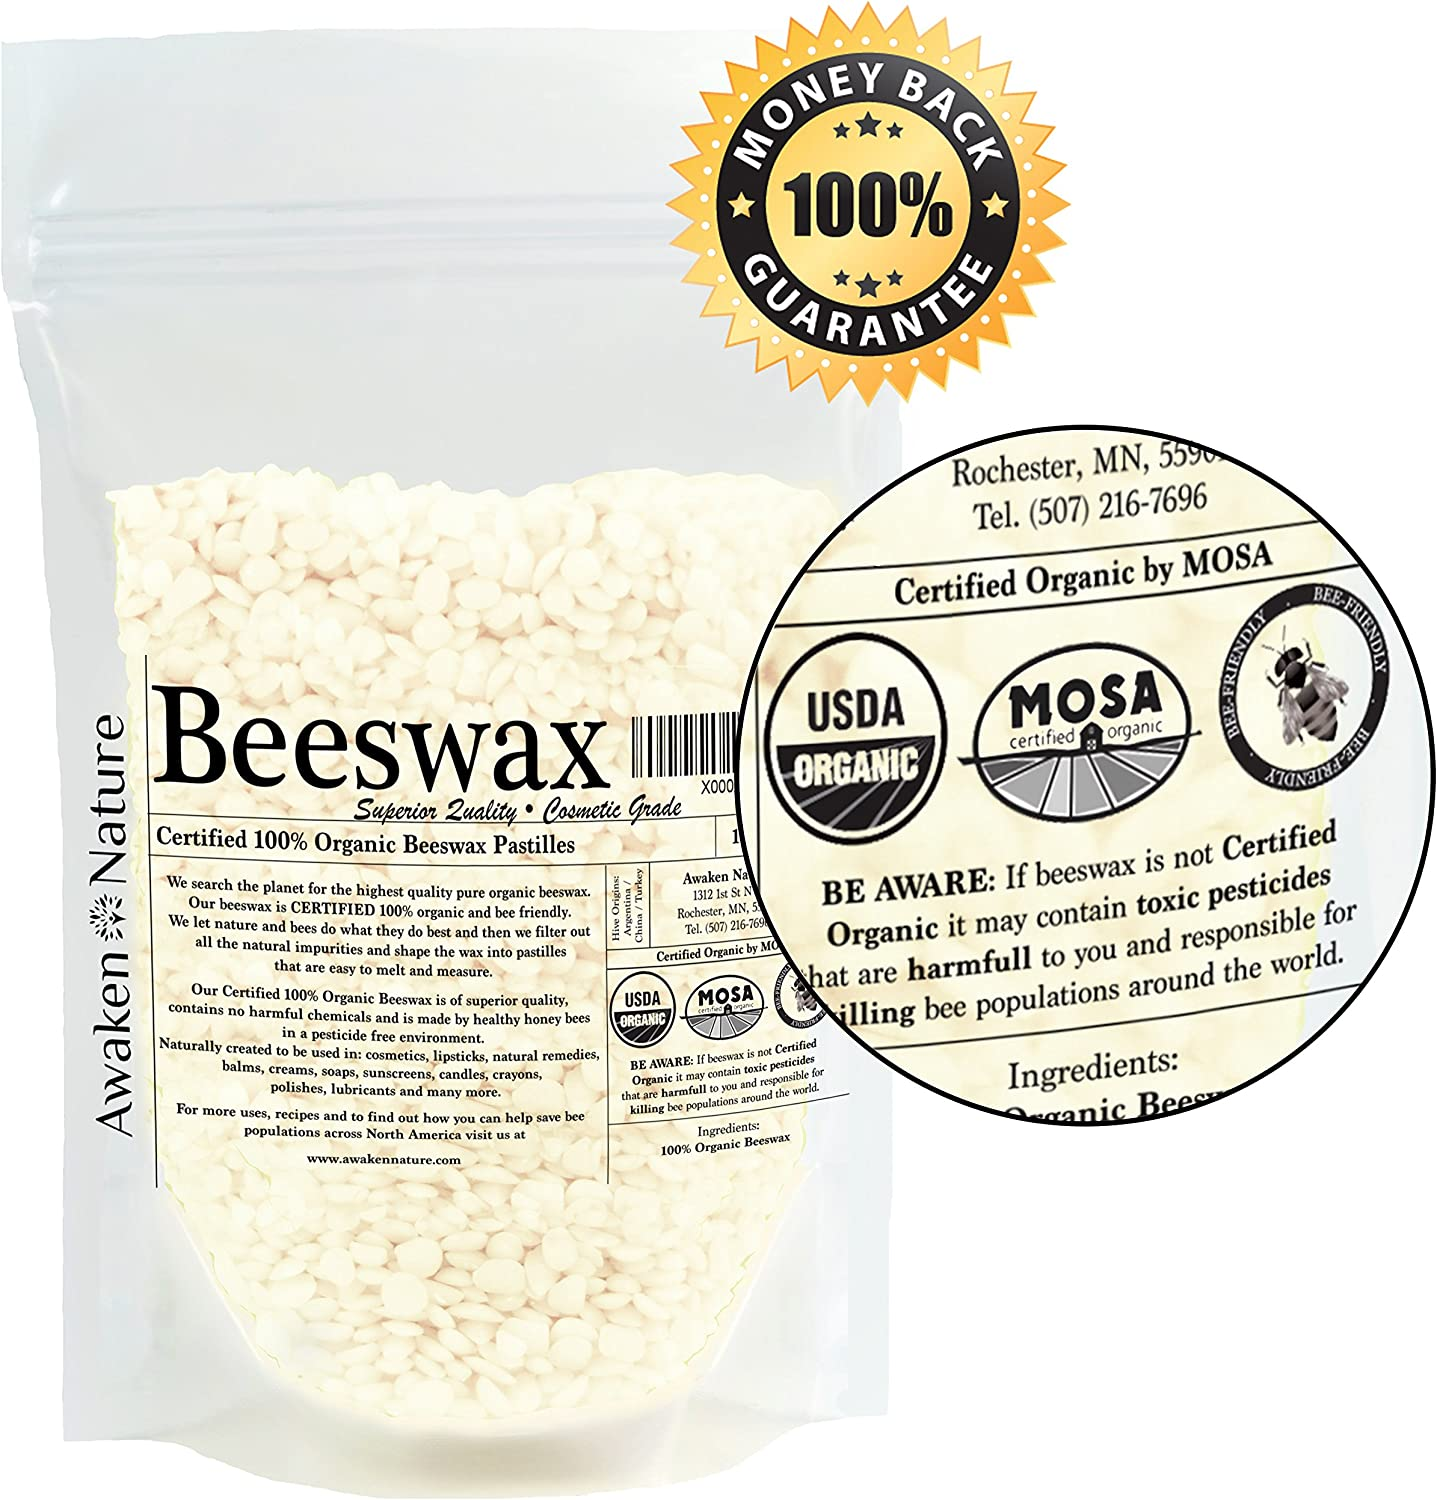 1 Pack Skin Care 1lb Pure Bees Wax No Toxic Pesticides or Chemicals Candles Sky Organics USDA Organic White Beeswax Pellets Easy Melt Pastilles- for DIY Lip Balm 3 x Filtered